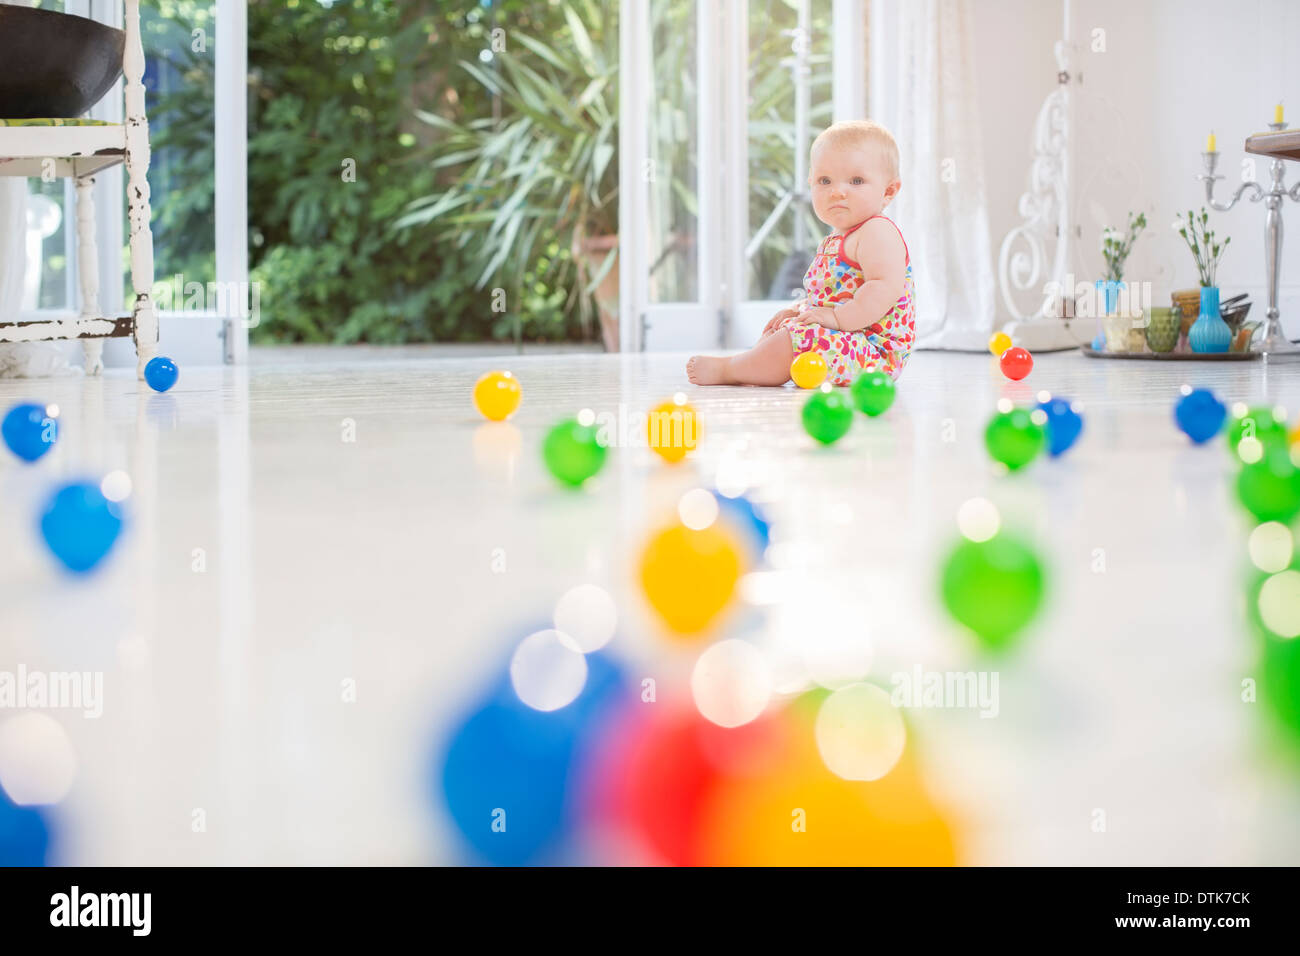 Baby girl with toys on kitchen floor - Stock Image